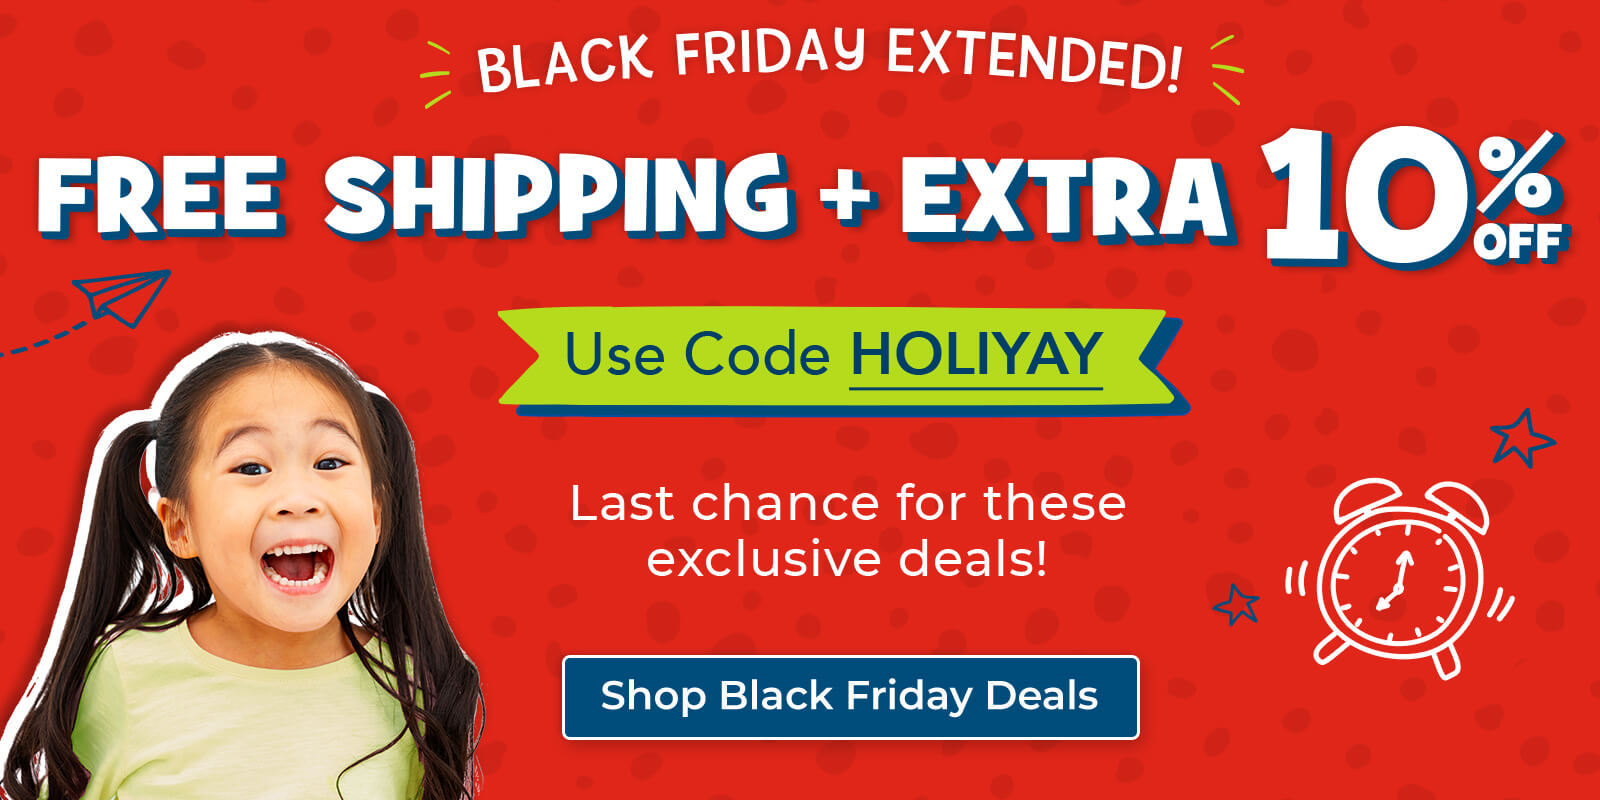 Black Friday Extended: Free shipping sitewide plus an extra 10% off – enter code HOLIYAY at checkout.